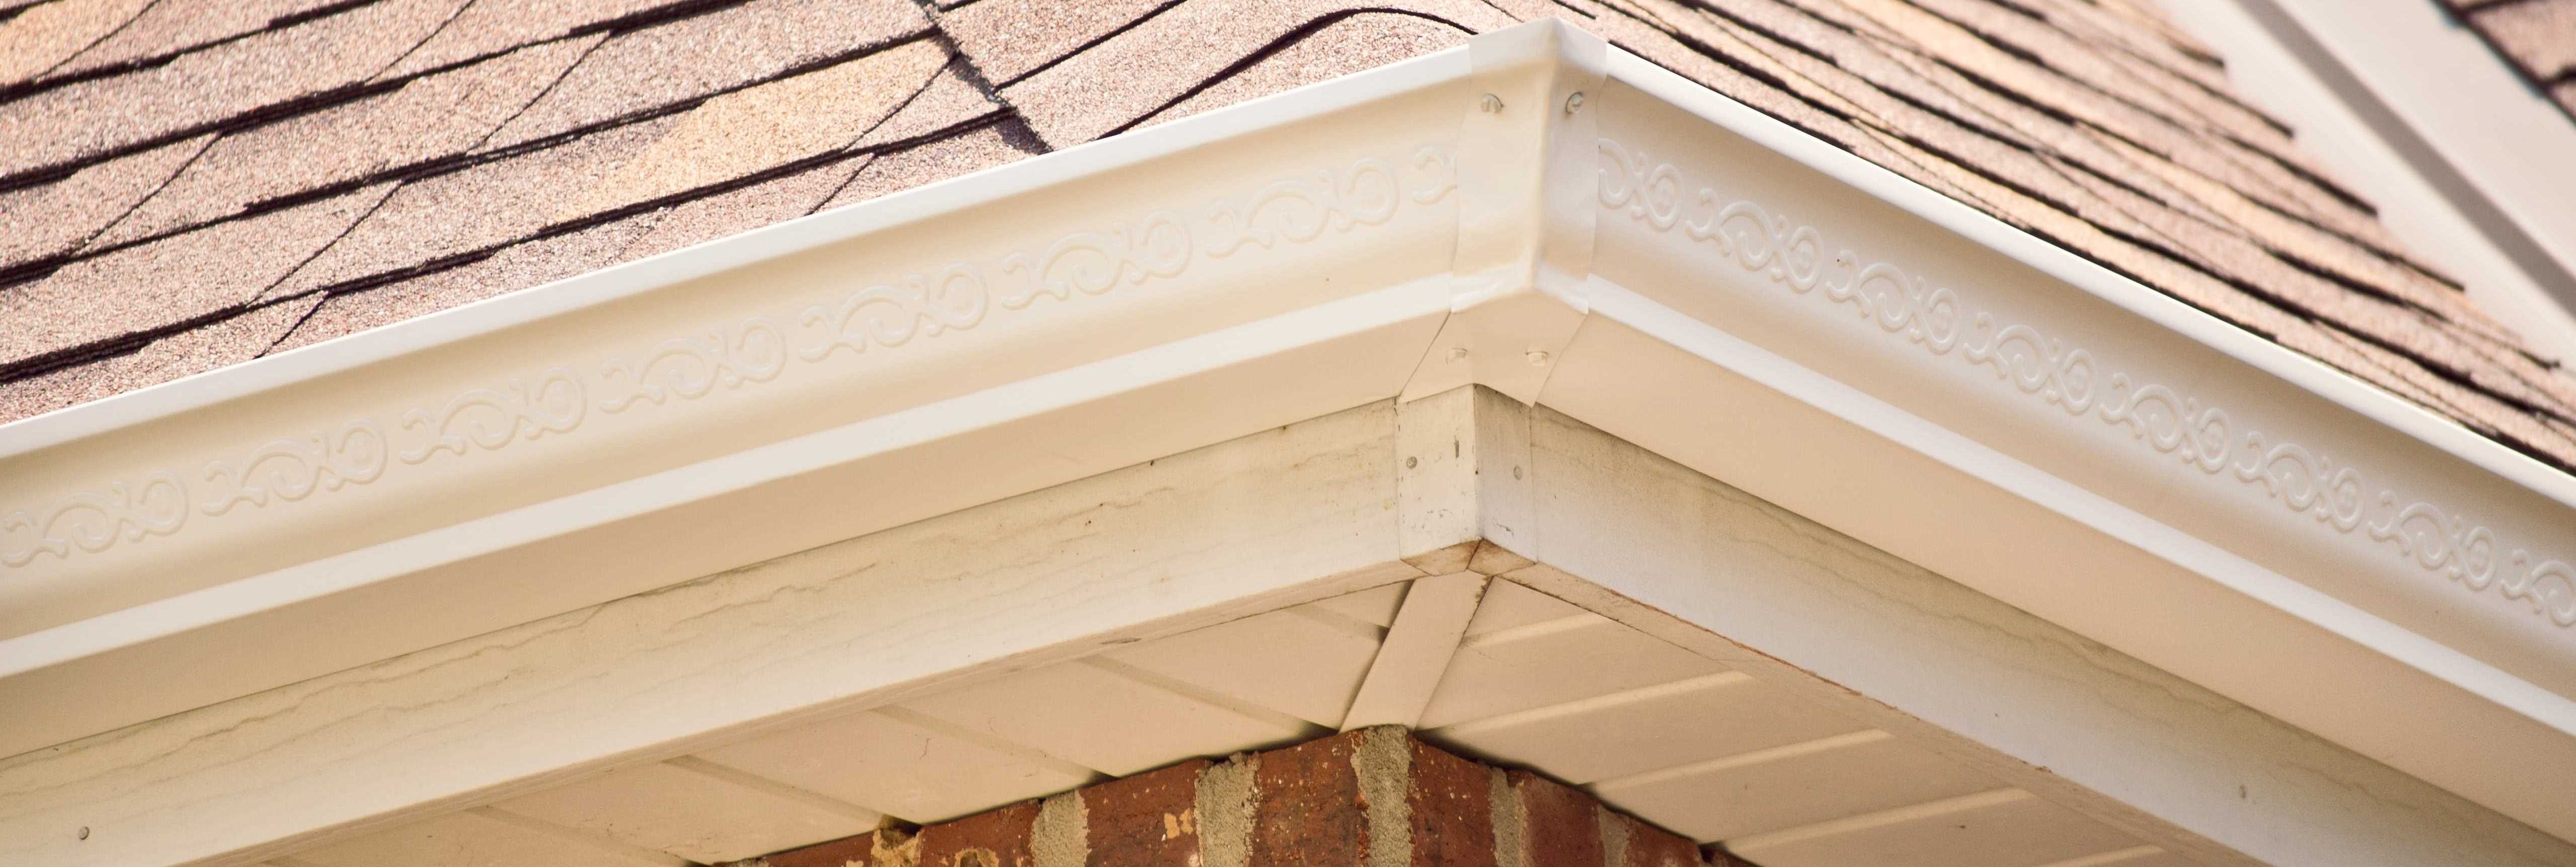 Original Design Hand Crafted Florentine Leader Head And Original Design Solid Brass Gutter And Downspout Hardware By Custom Cop Gutters Downspout Metal Roof